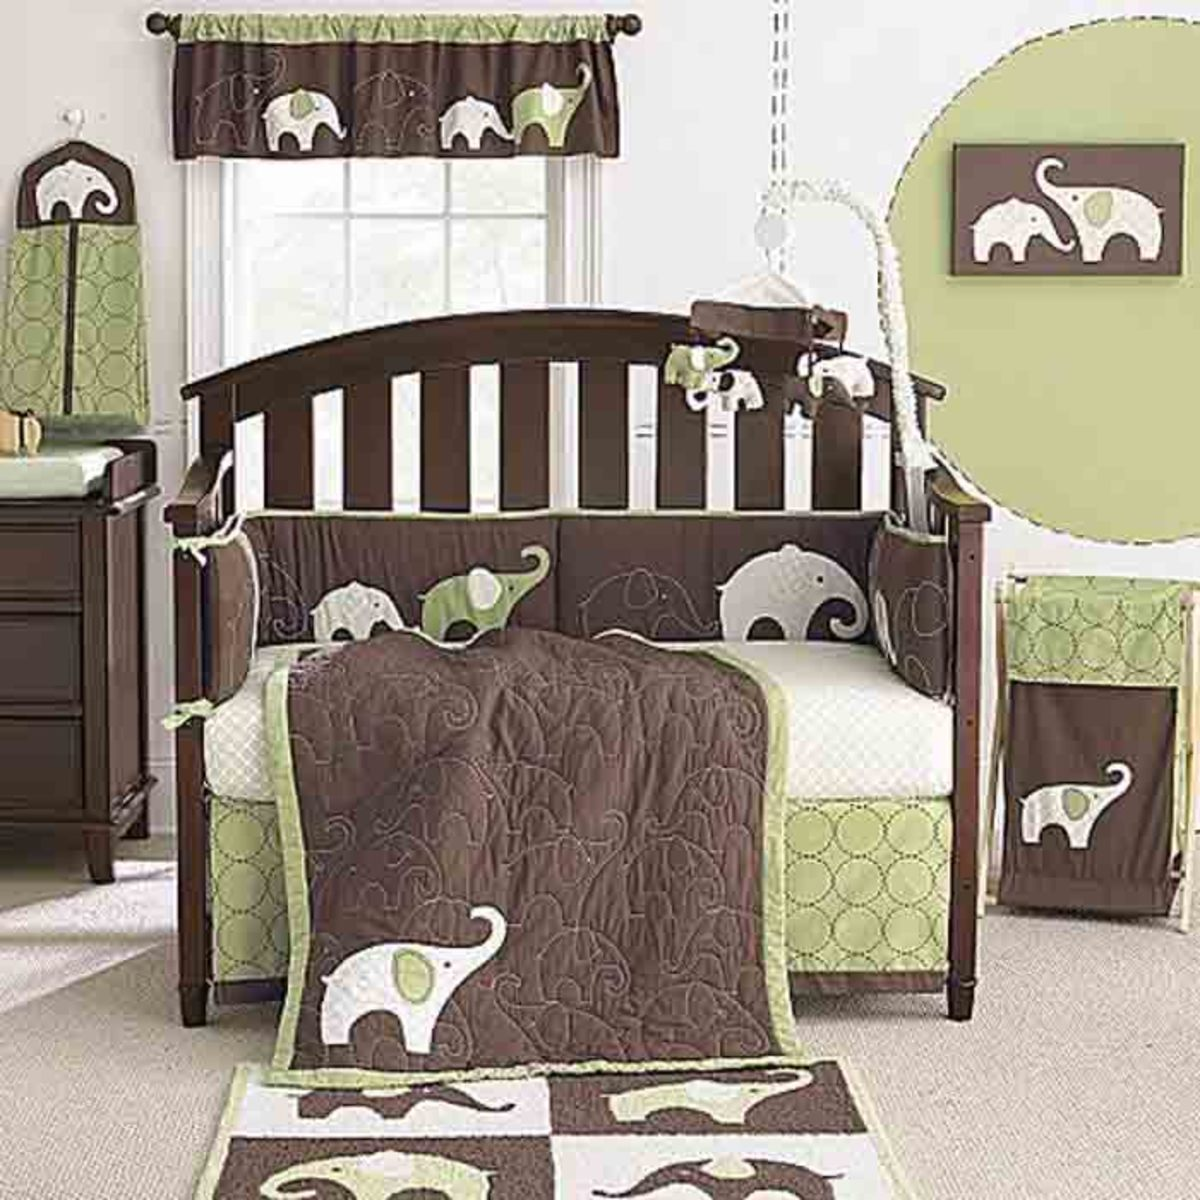 Decorating ideas for a baby boy nursery for Nursery theme ideas